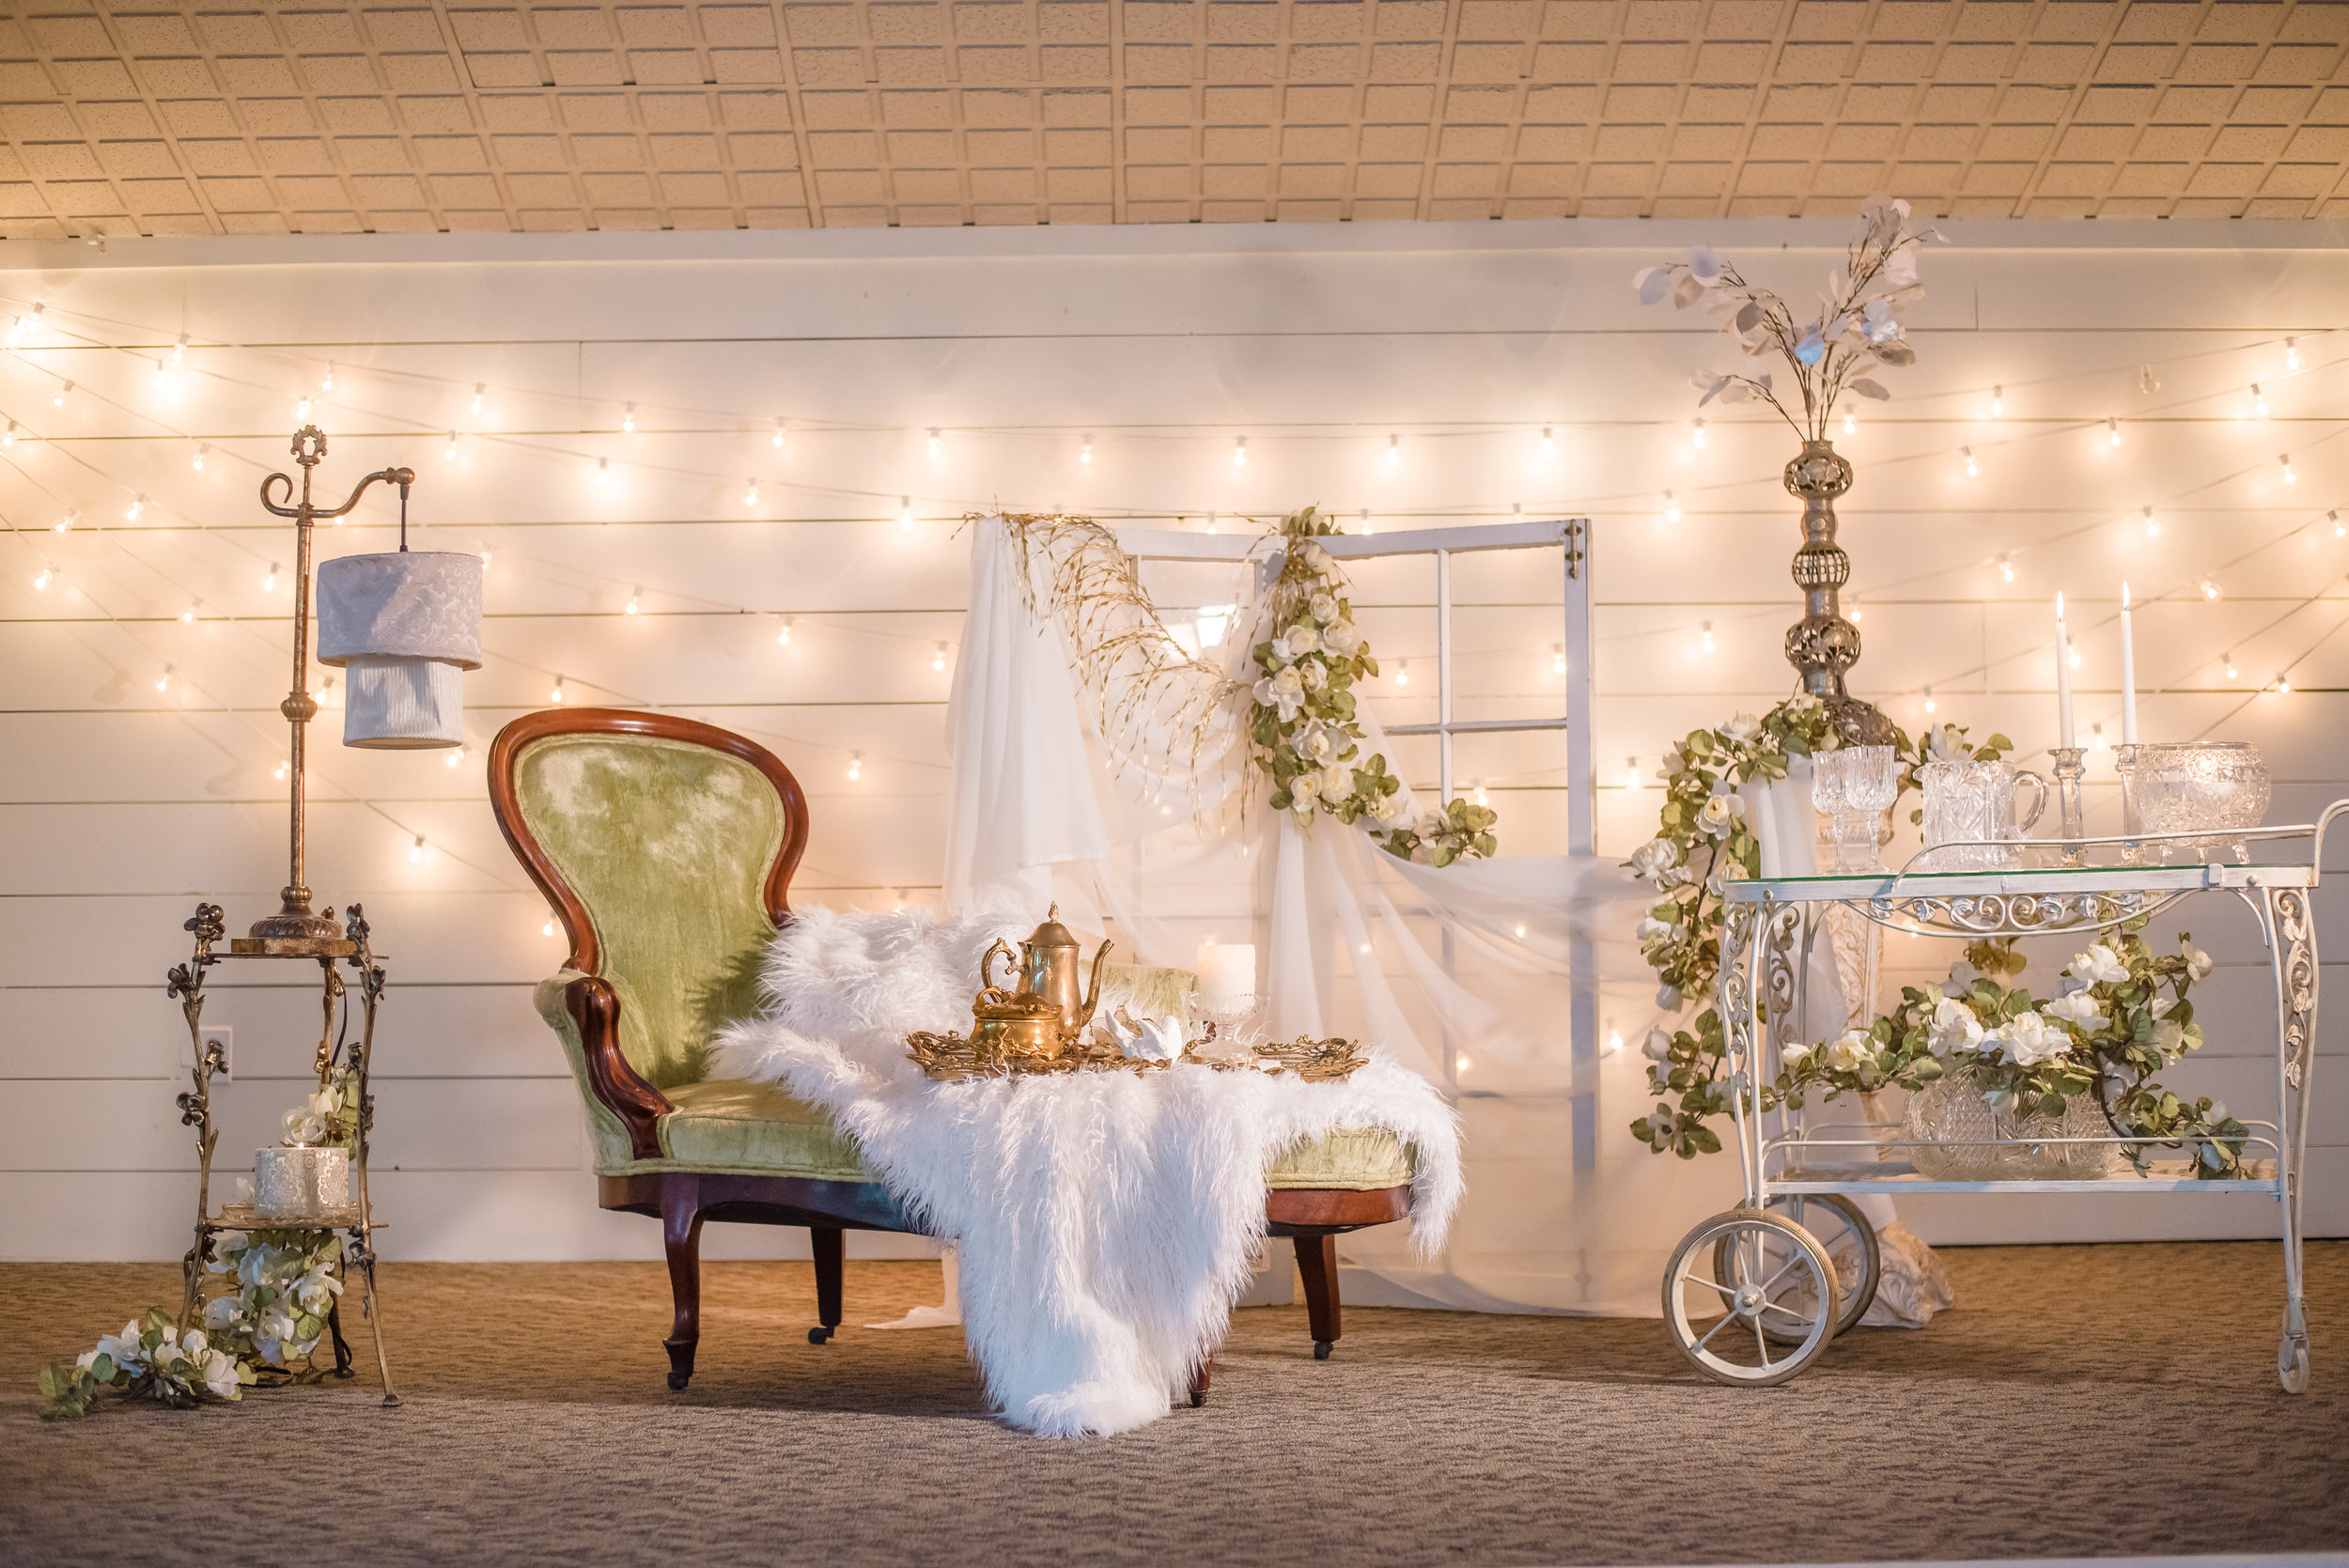 Gwyneth Chaise Lounge ,  Sheffield Tea Cart ,  Gold Floral Plant Stand ,  Wedding Pillars ,  Ornate Flower Stand ,  Brass Tea Pot ,  Gold Mirror Tray ,  Glass Candlesticks ,  Russell Lamp , and  Cream Rose Floral Swag .